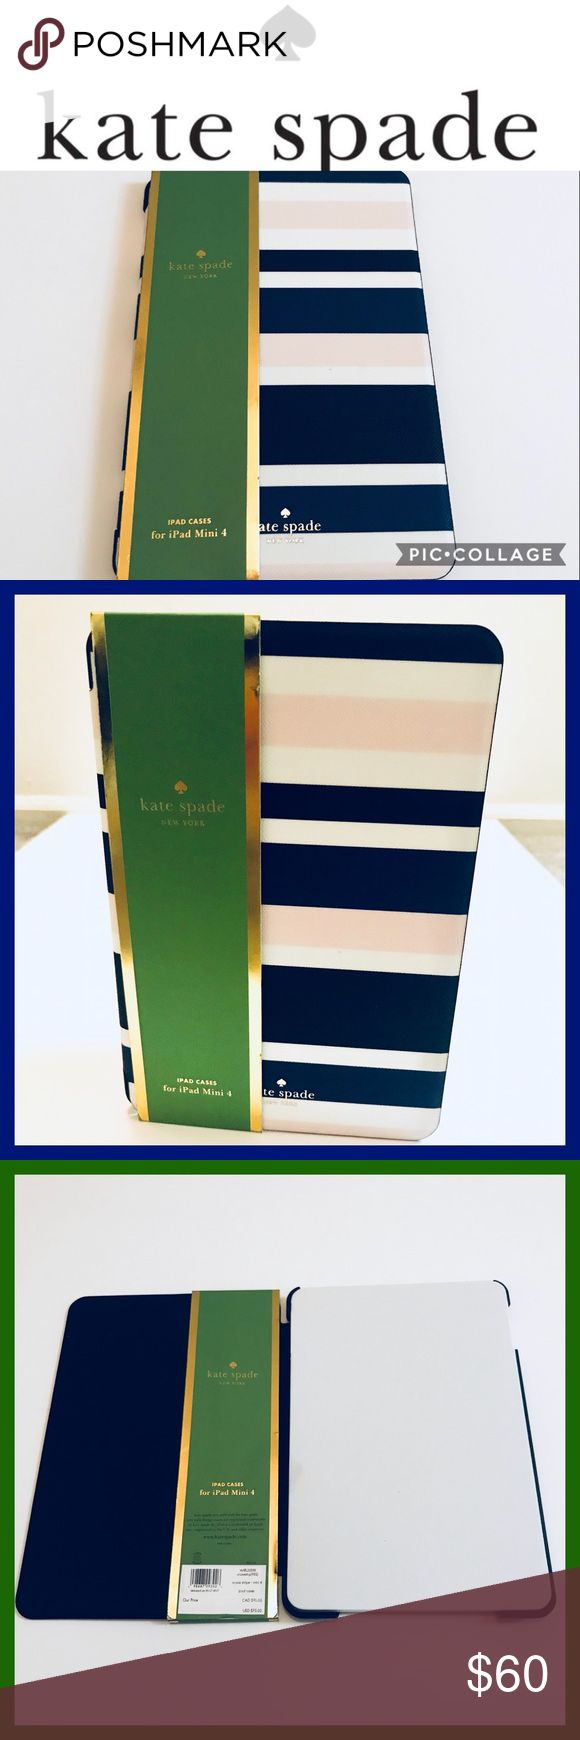 Kate Spade I Pad Mini 4 case Kate Spade I Pad Mini 4 case • New York Cruise Stripe • Grainy Vinyl Leather • Brand New with Tags • Dimensions: 8.5 x 4.2 x 0.8 kate spade Accessories Tablet Cases